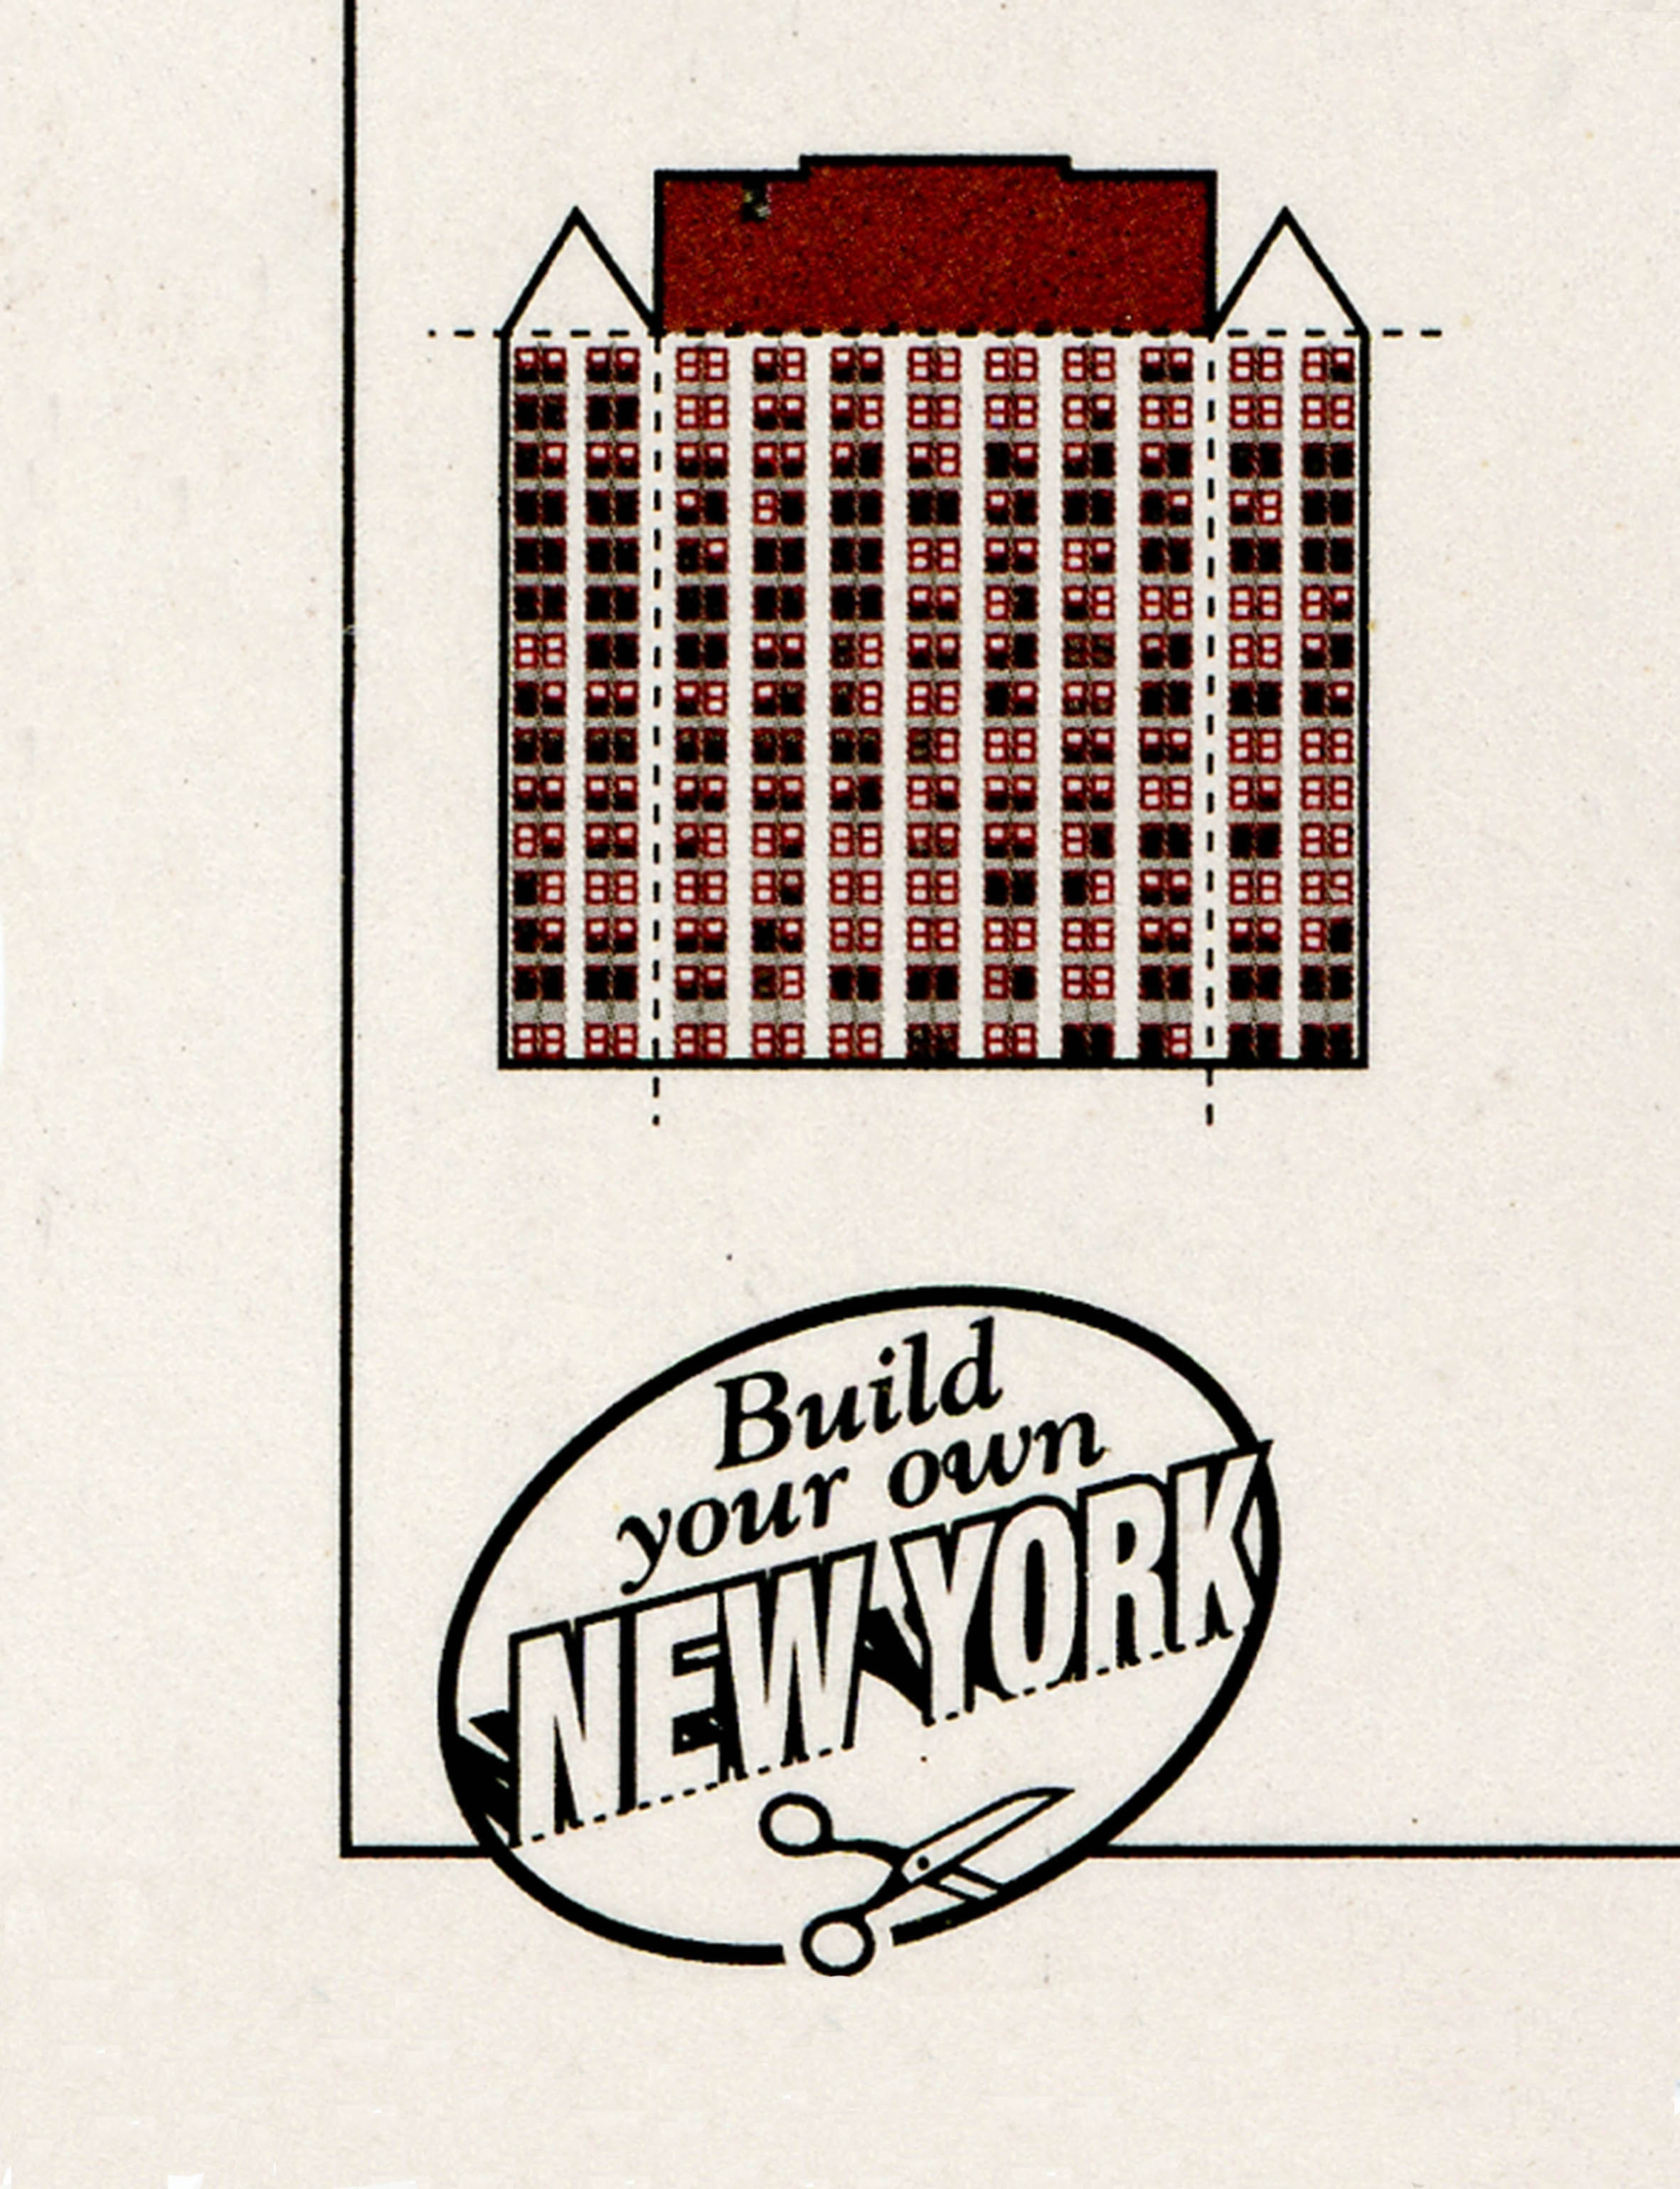 Build your own New York,  2015